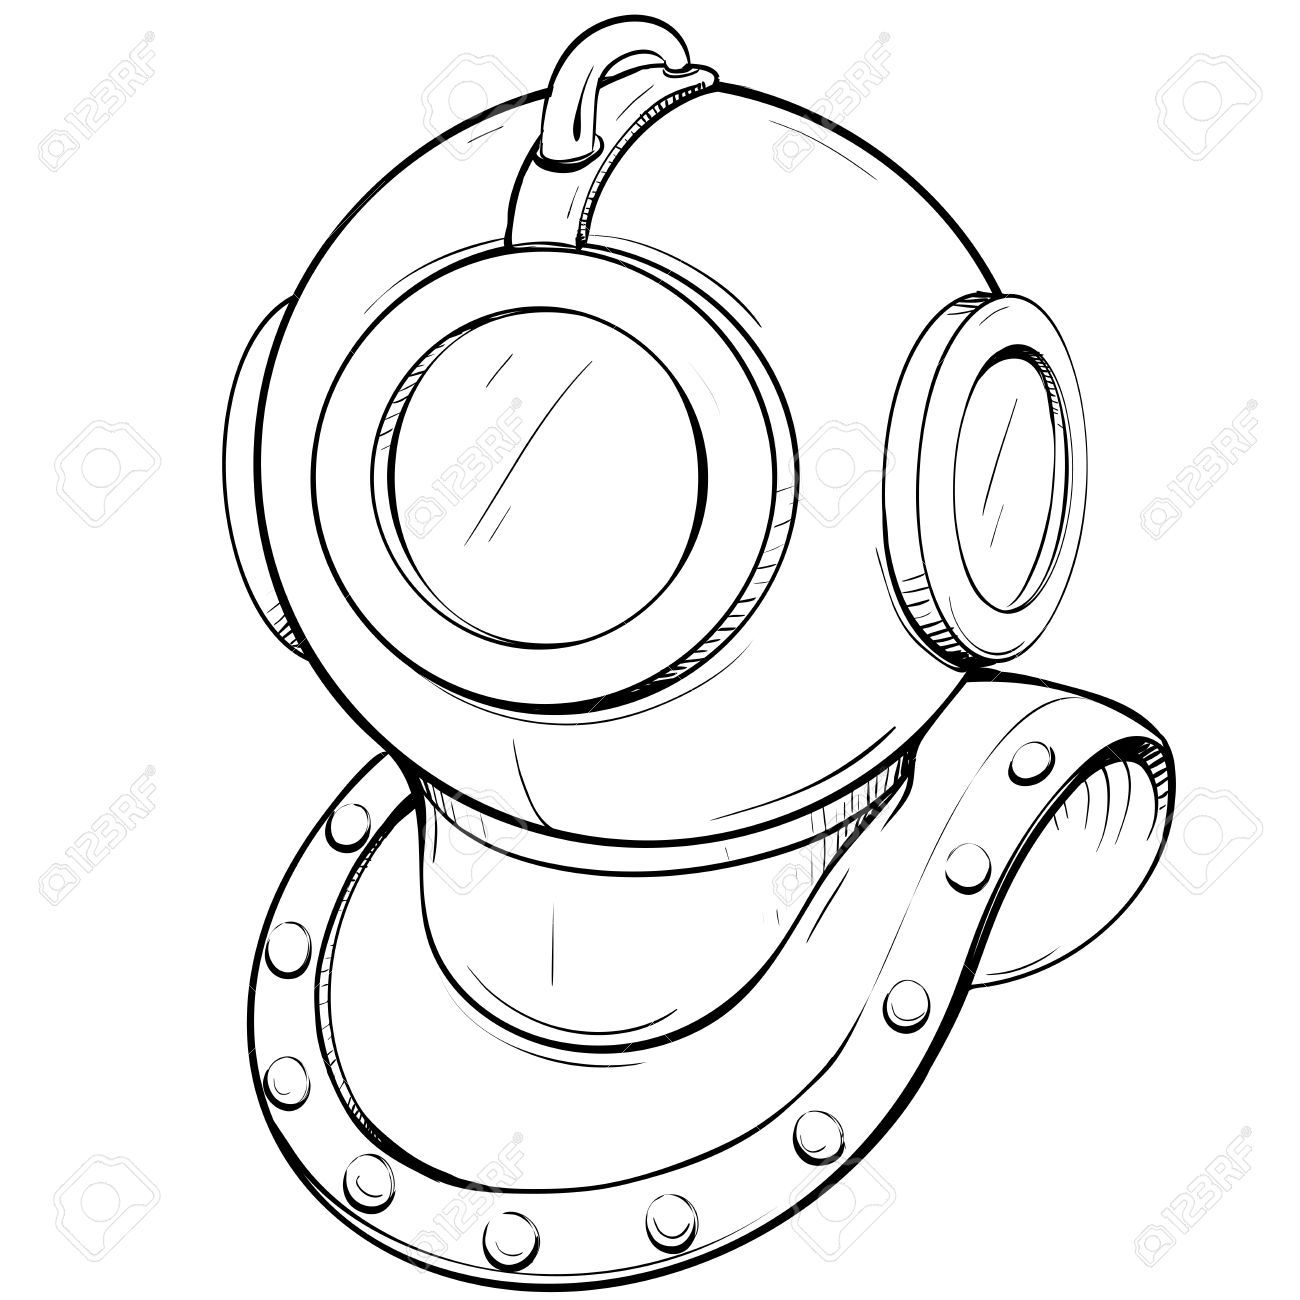 Diving Helmet Stock Vector Illustration And Royalty Free.